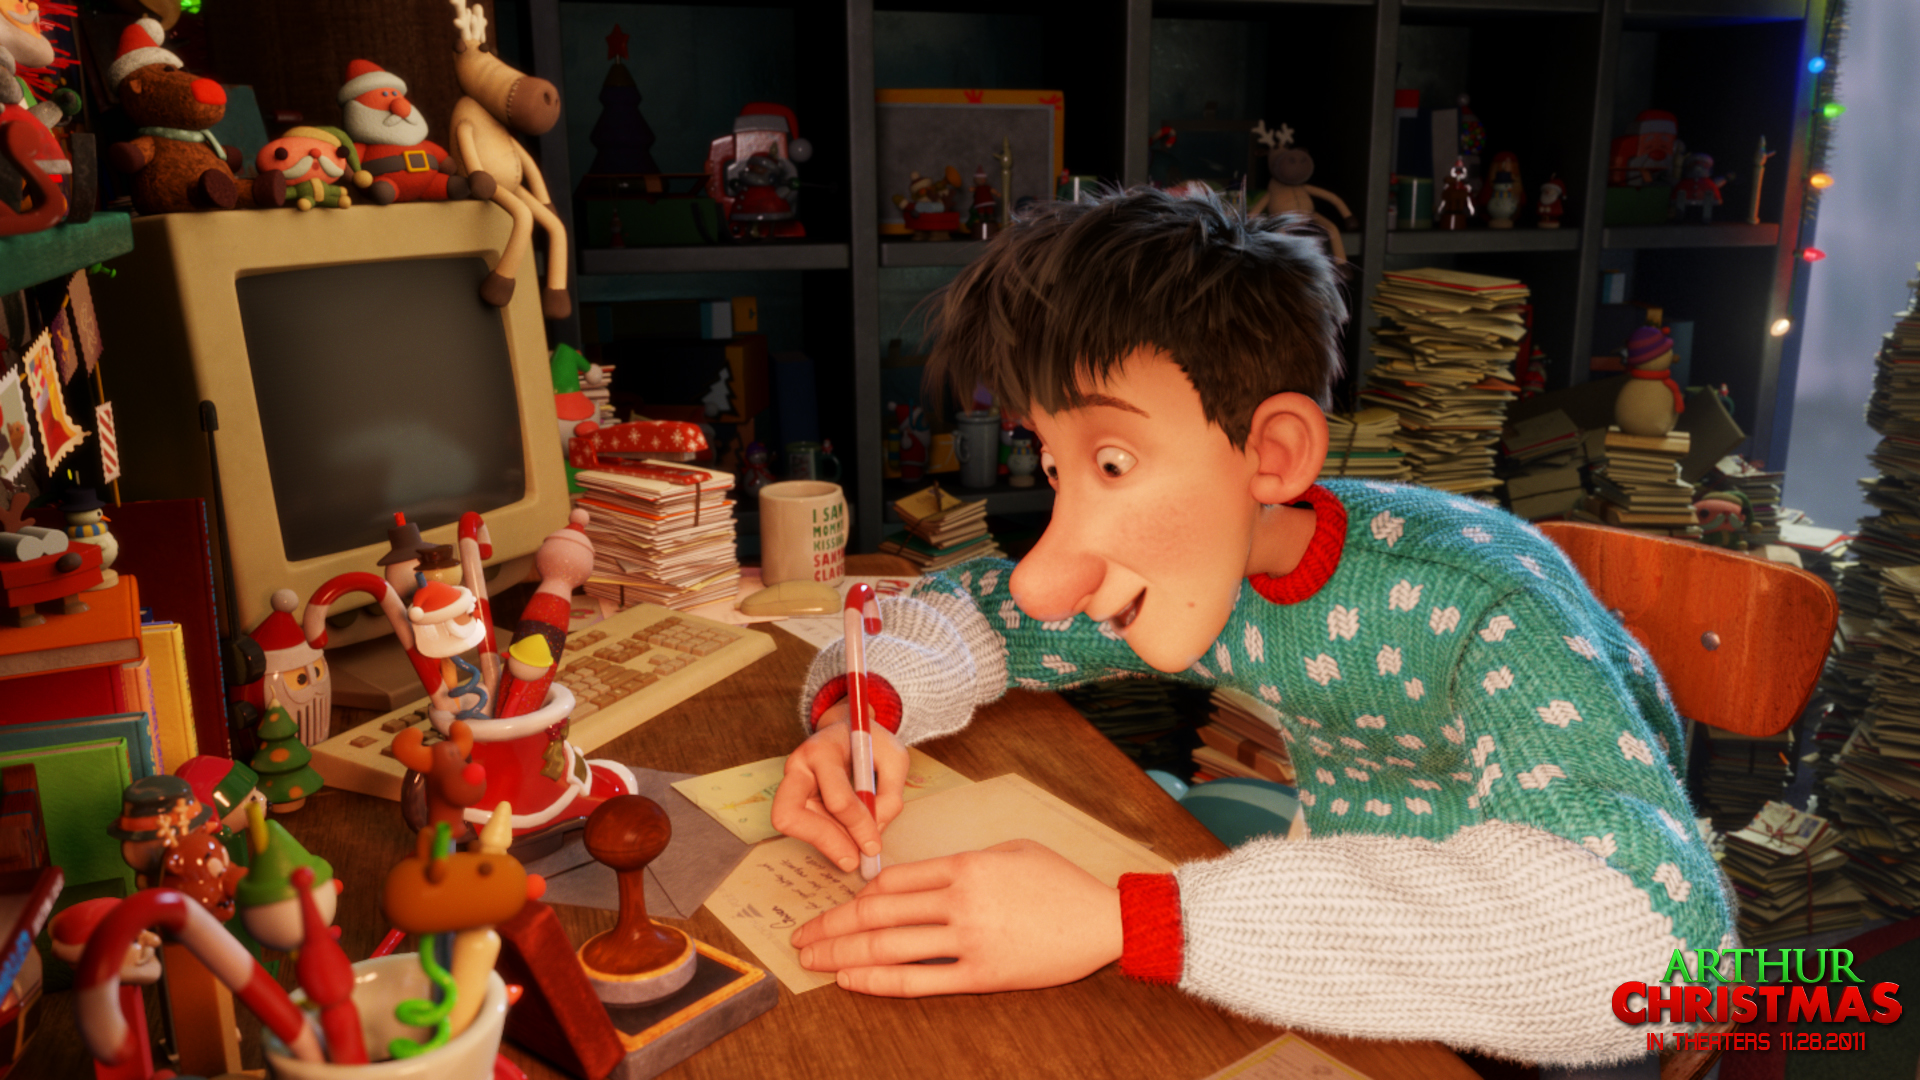 Arthur Christmas Movie Downloads And Wallpapers Kids Tribute